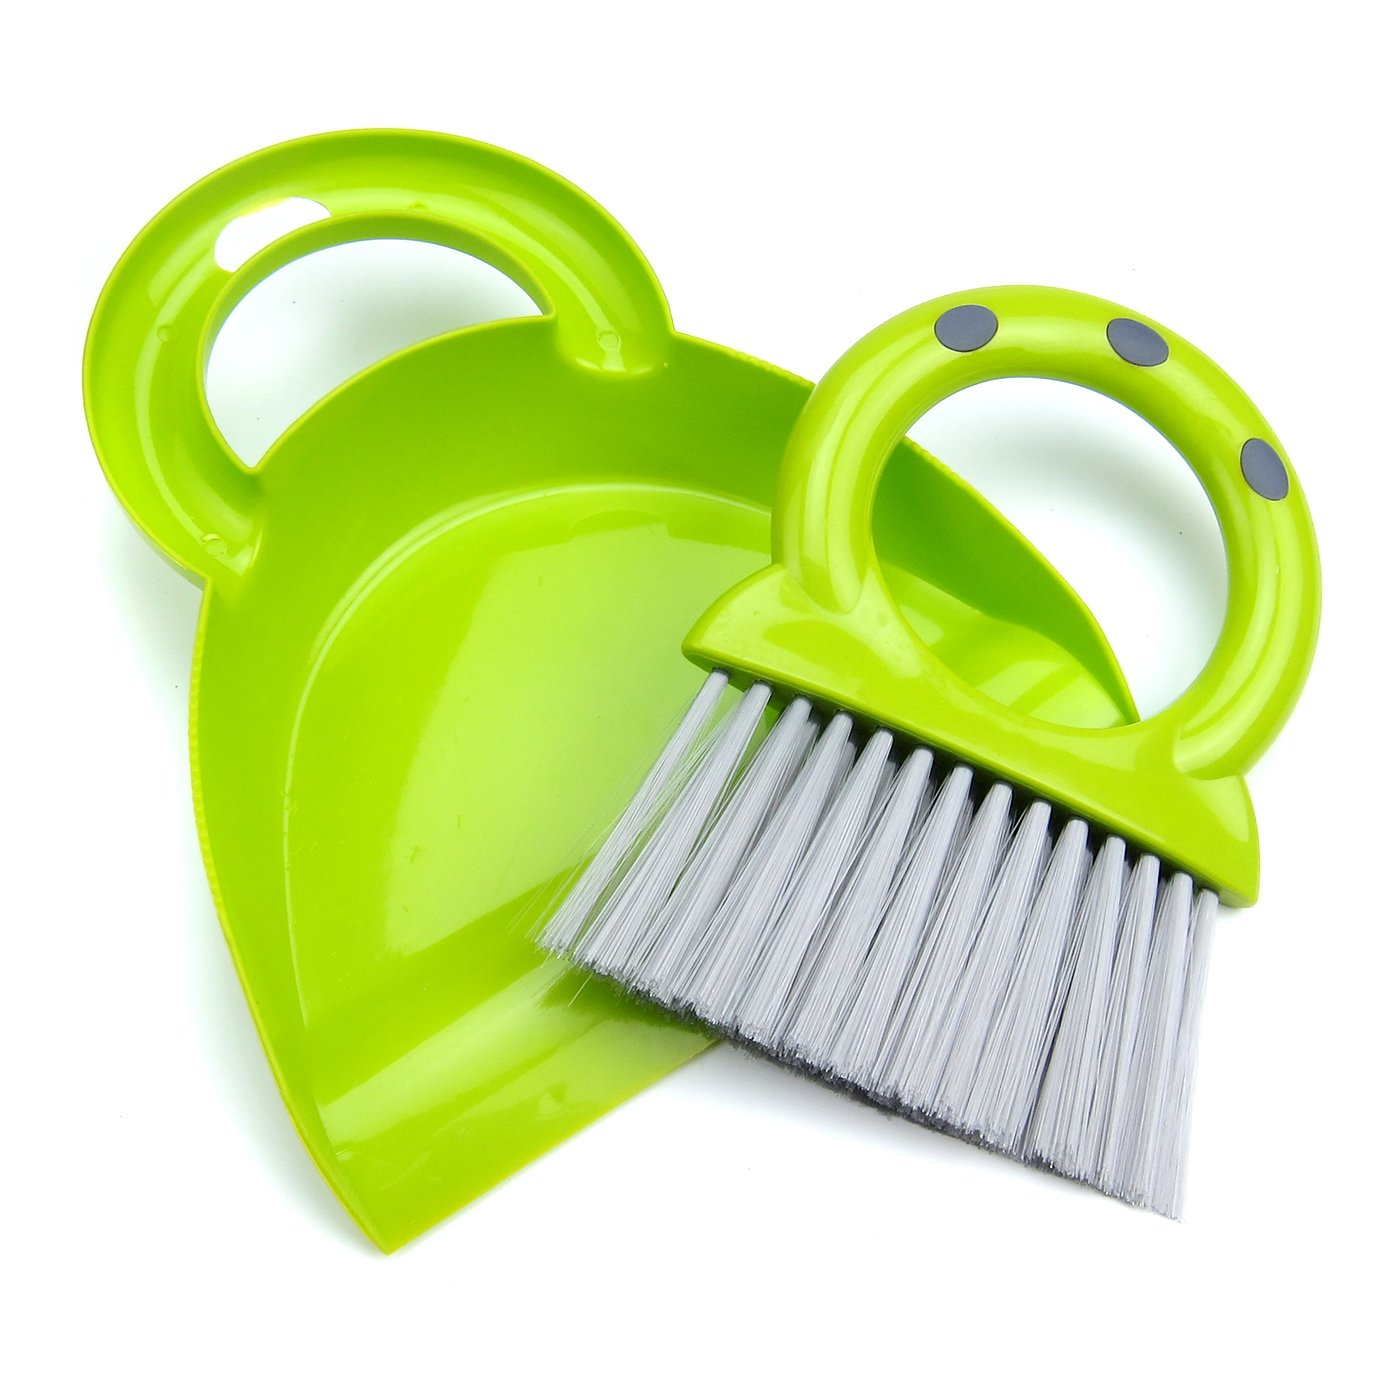 Alfie Pet by Petoga Couture - Austen Cat or Small Animal Cleaning Brush Set - Color: Green